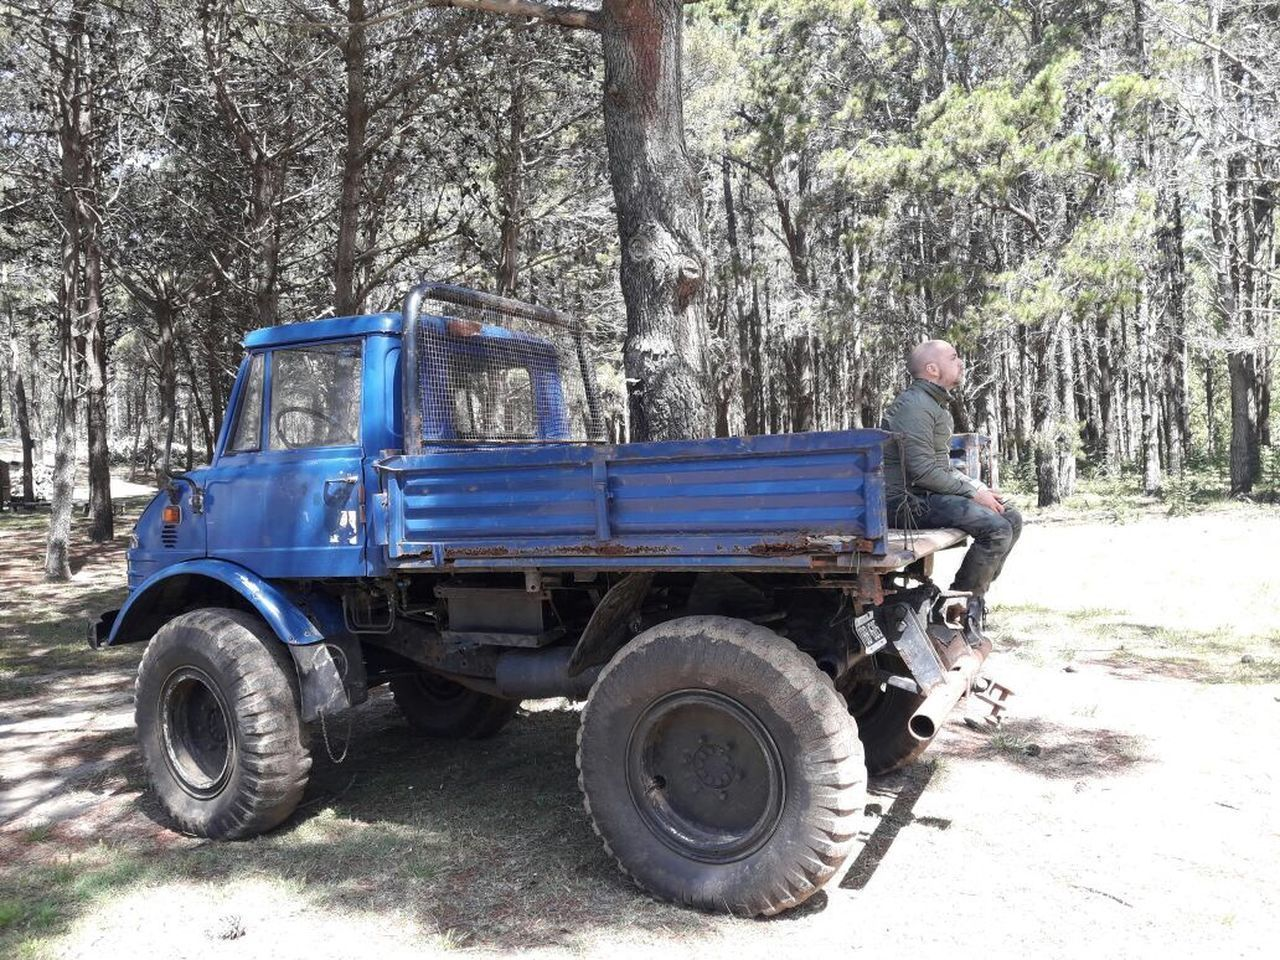 tree, transportation, day, land vehicle, outdoors, no people